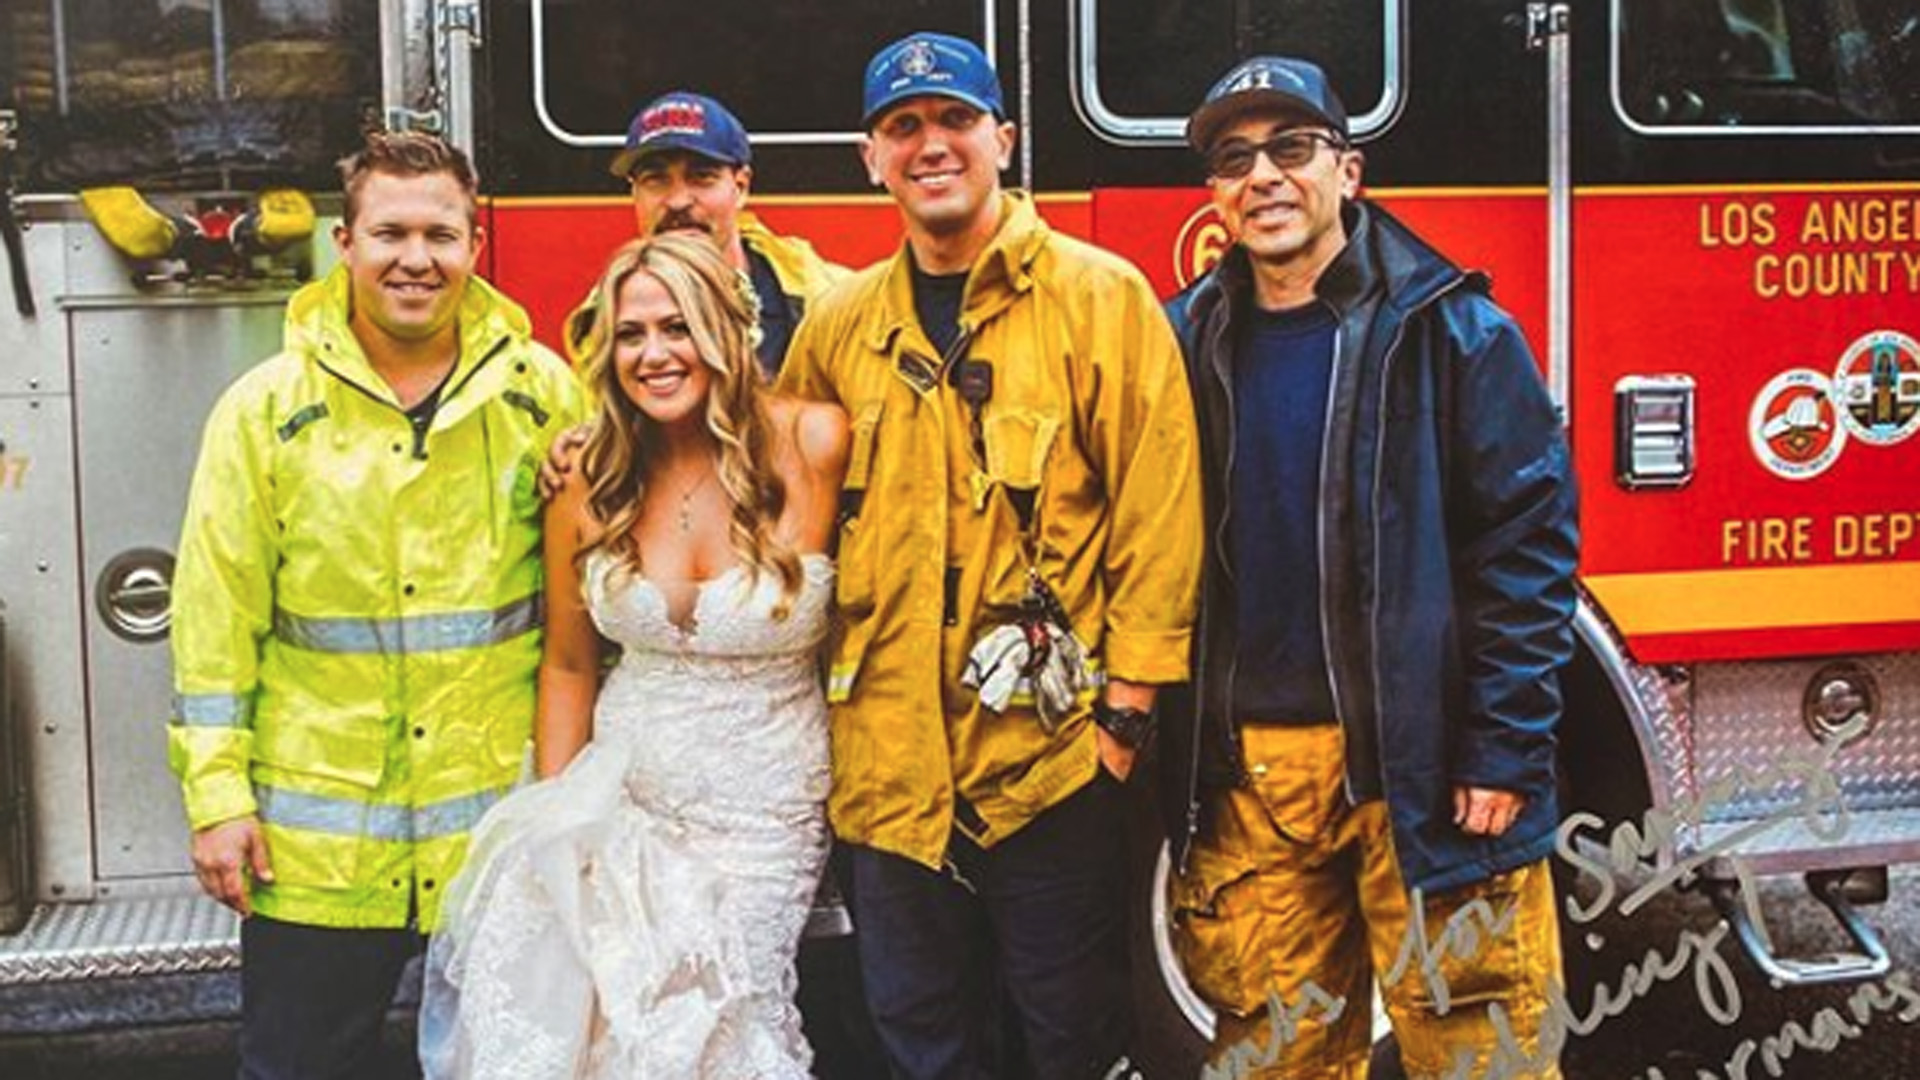 L.A. County firefighters and a bride they escorted to her wedding are seen in a photo posted by the department on Nov. 16, 2019.